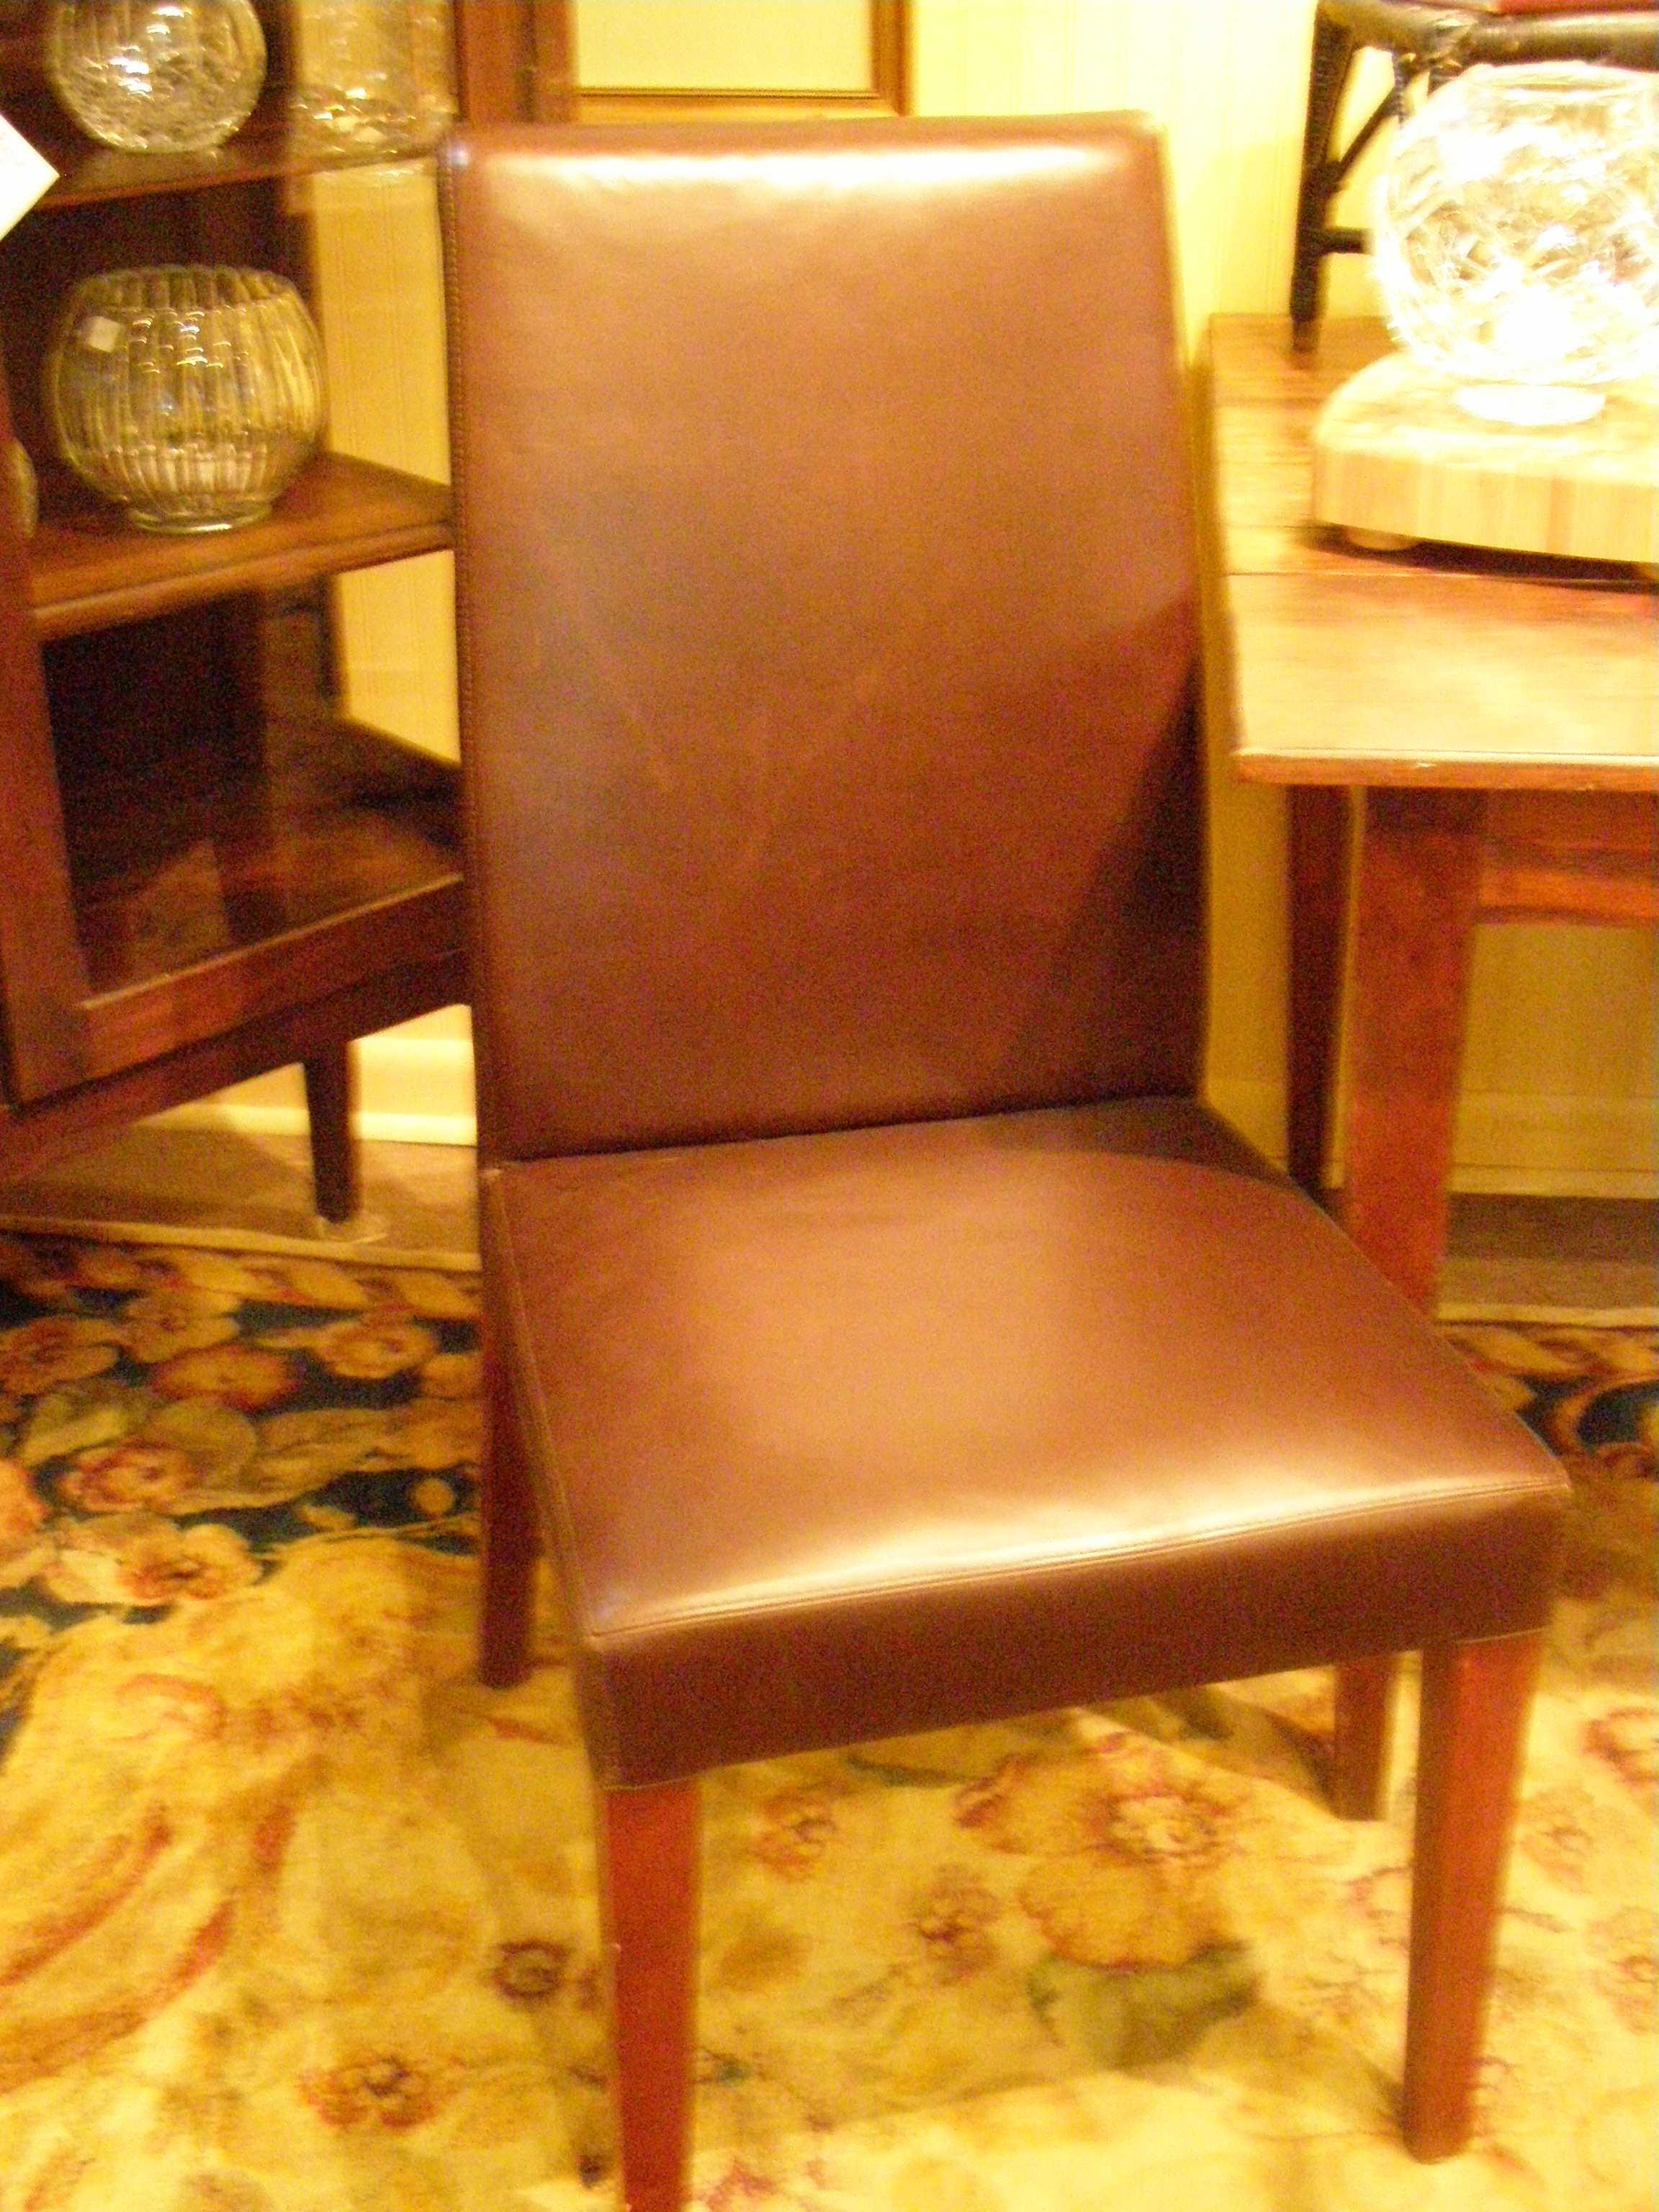 4-Leather Parson's Chairs - $180 pr